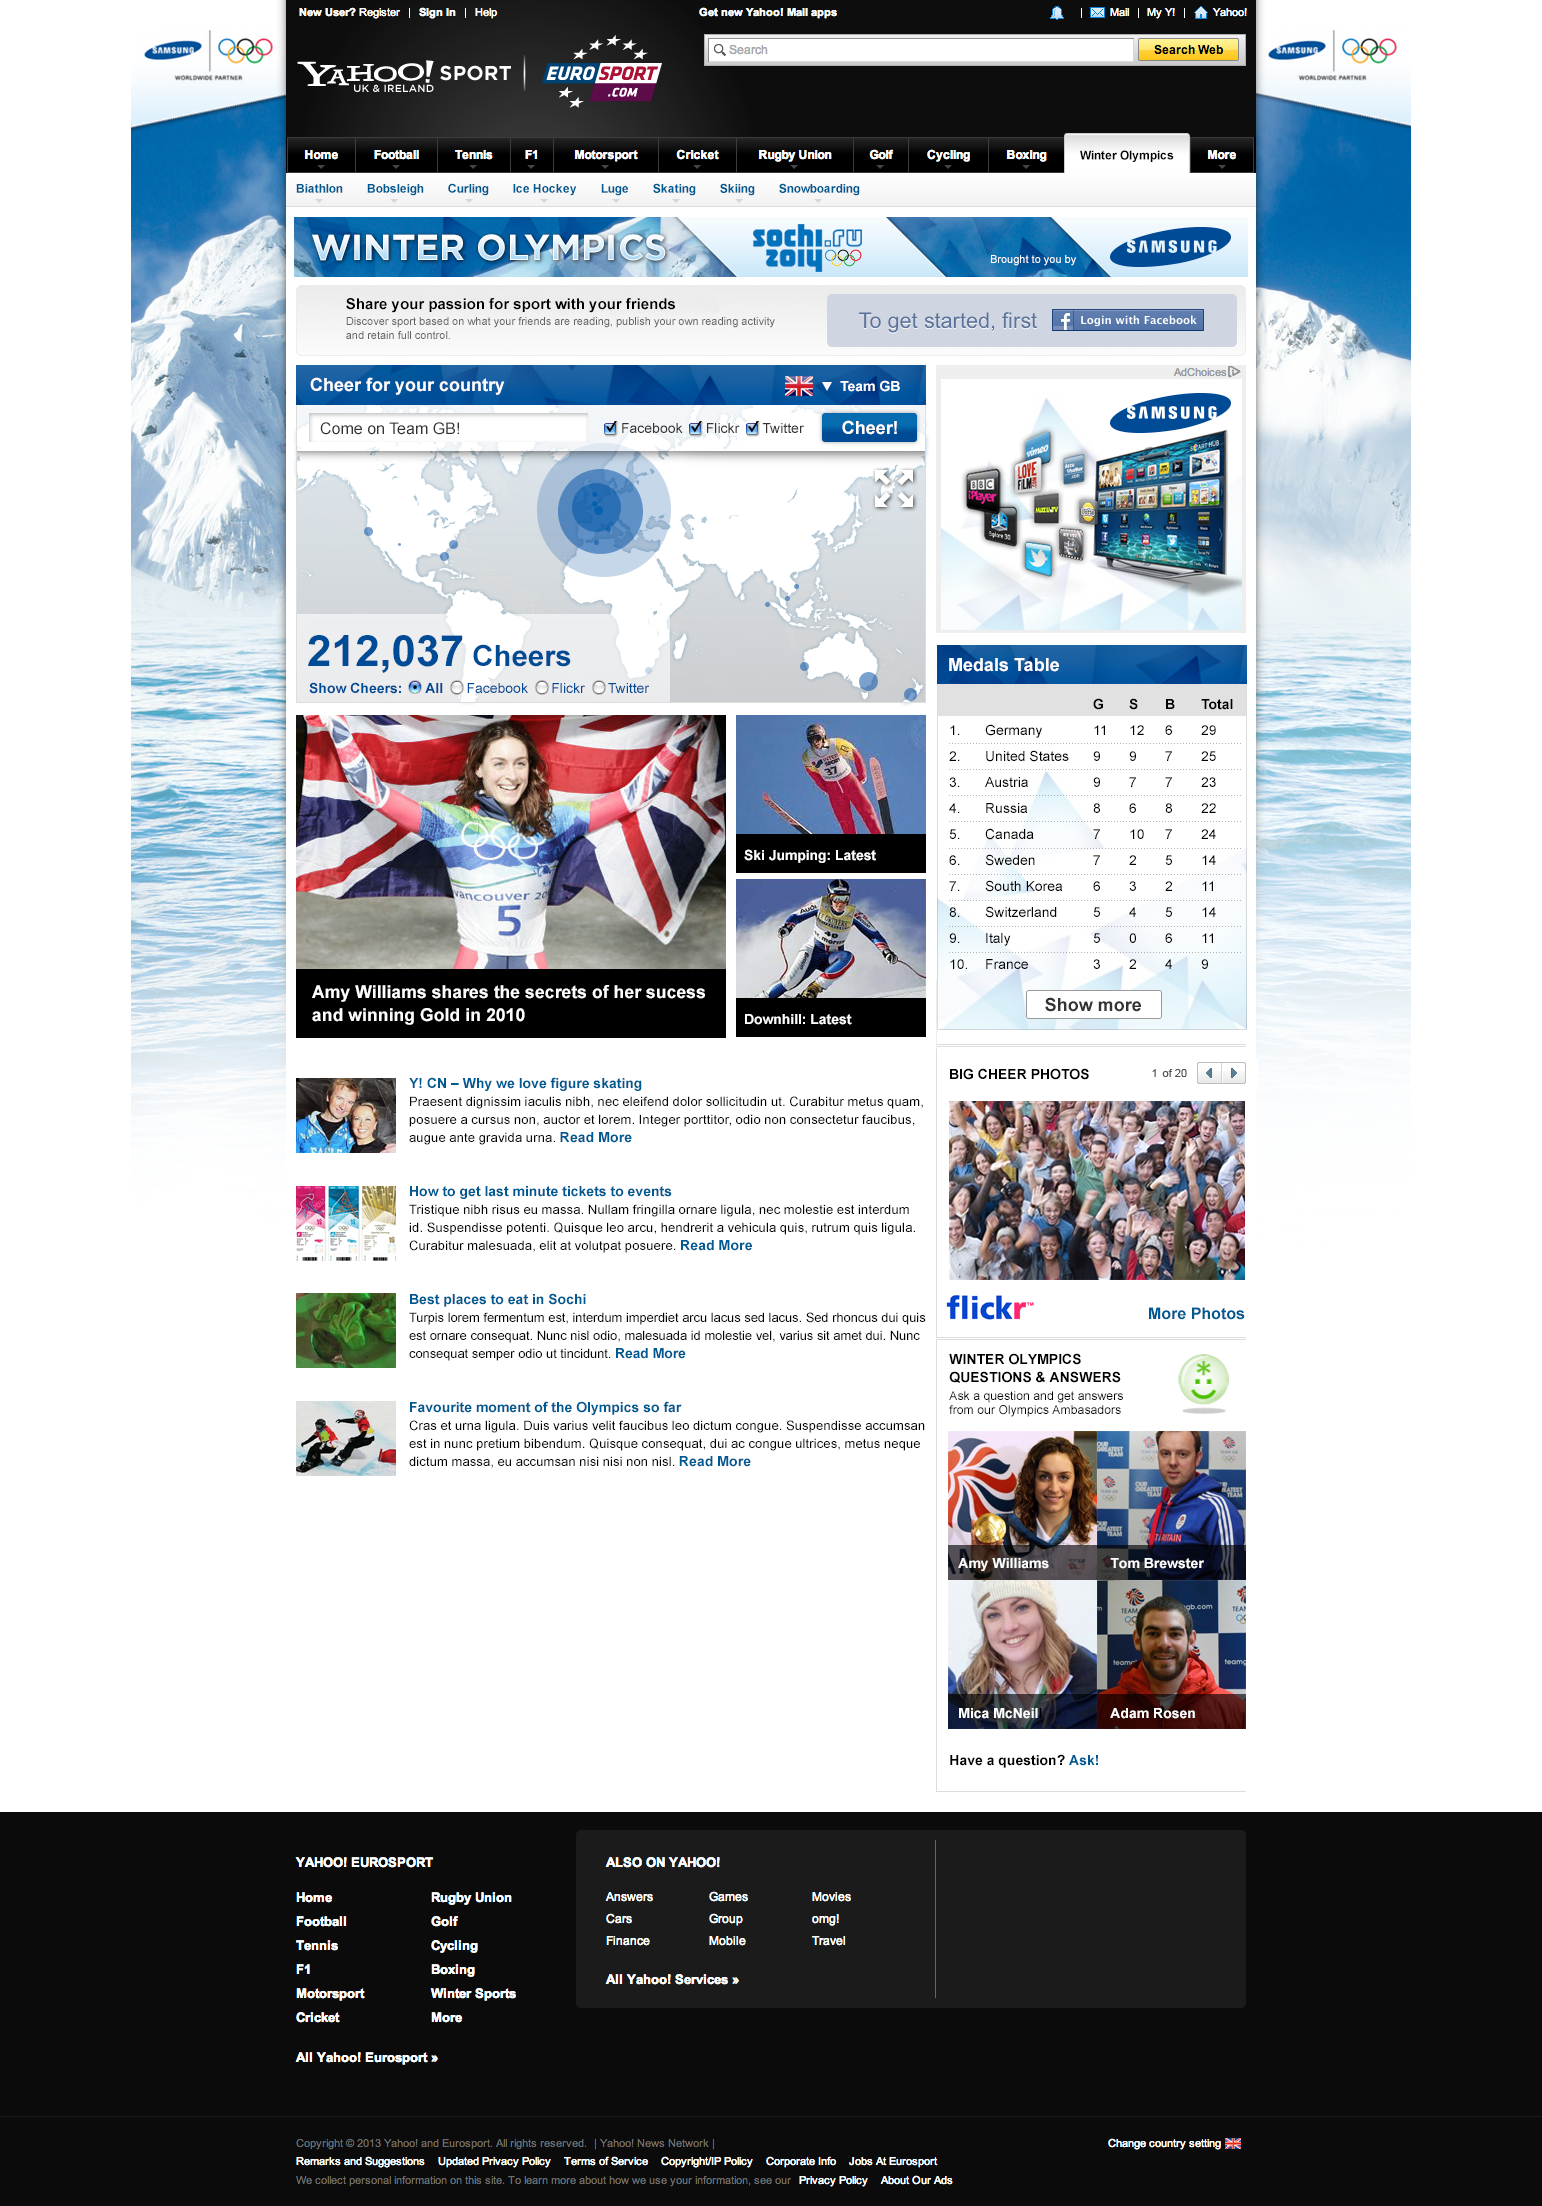 Samsung Winter Olympics - Website design Farnborough, Hampshire